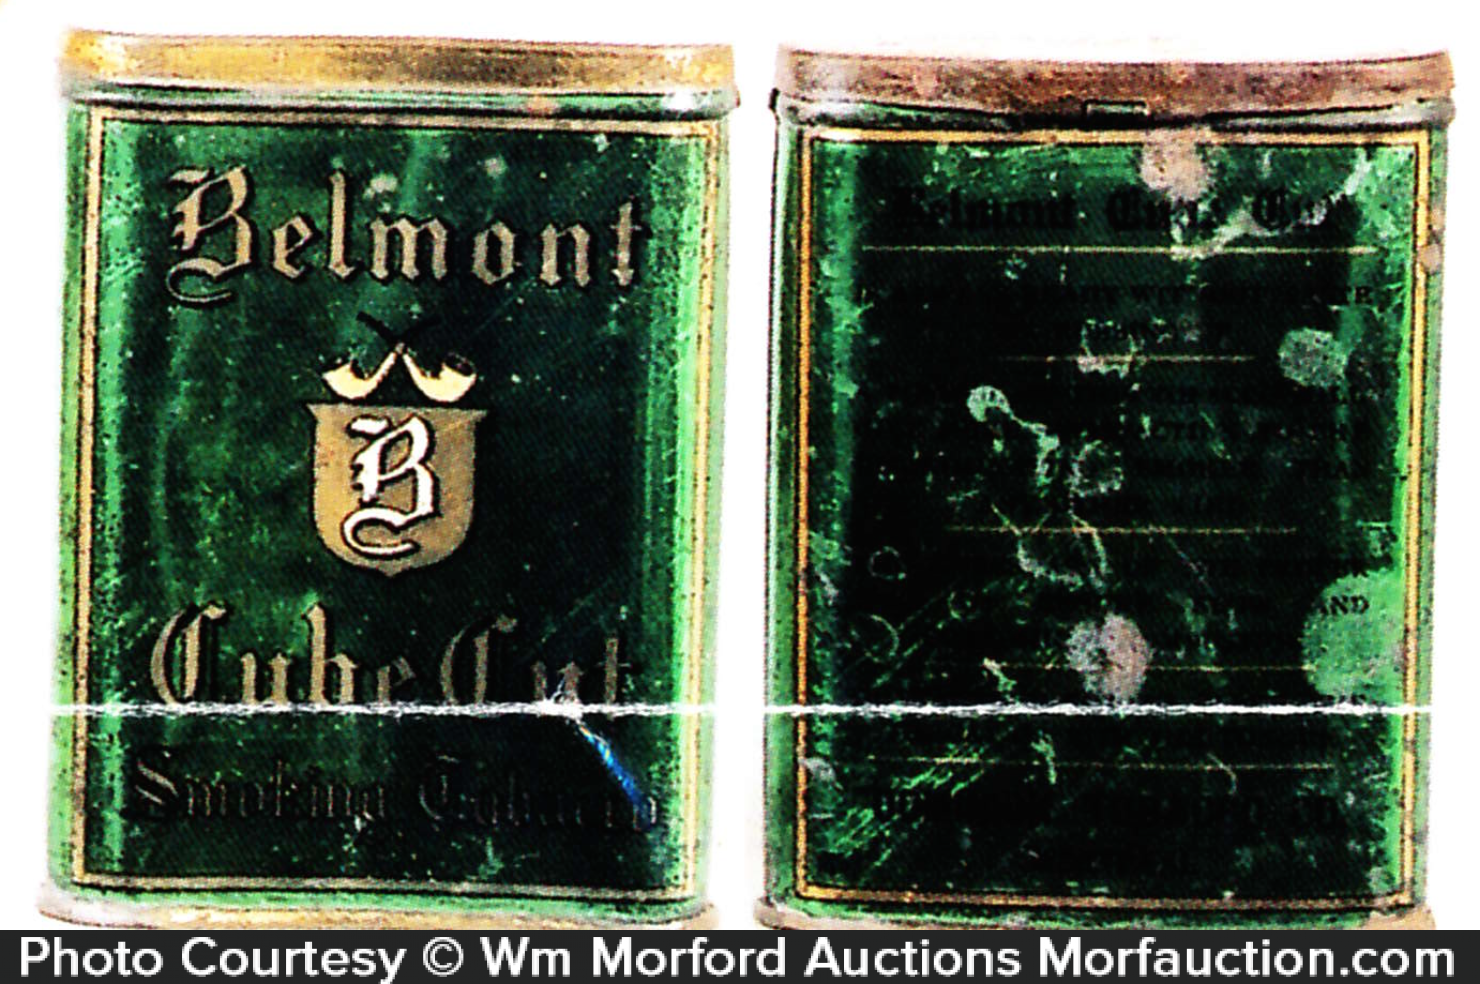 Belmont Tobacco Tin